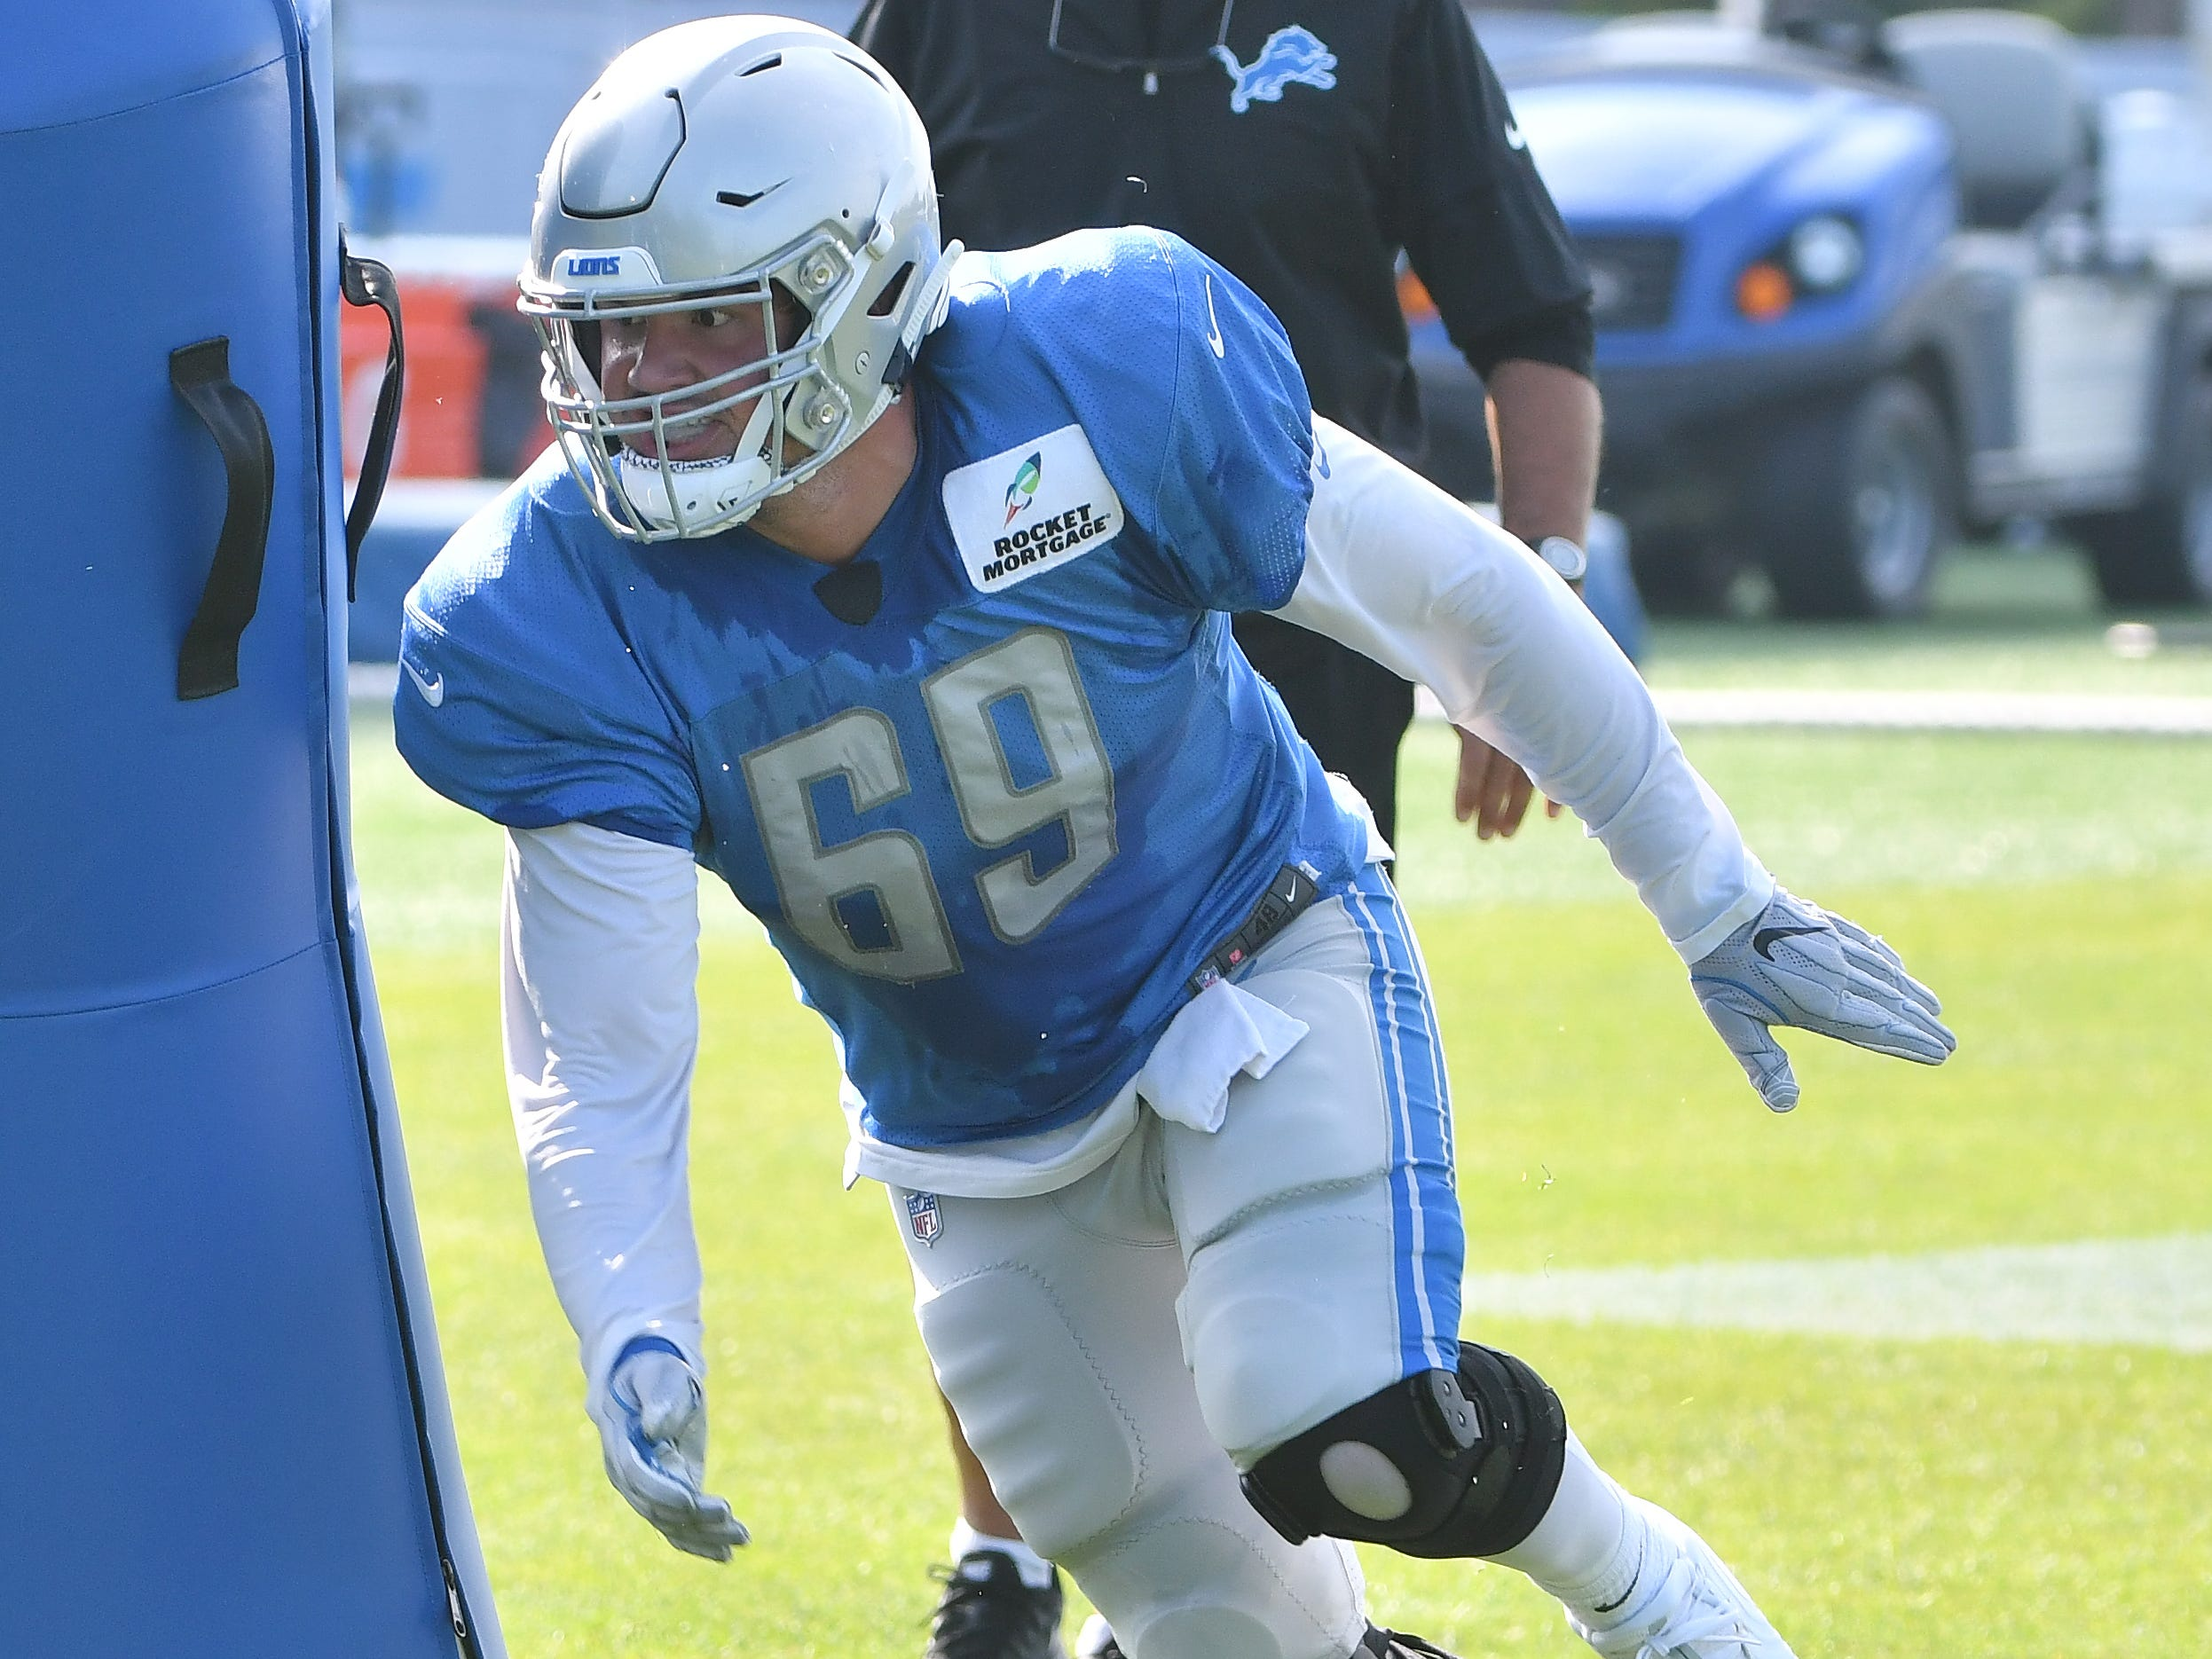 Lions defensive end Anthony Zettel works around the pylons.